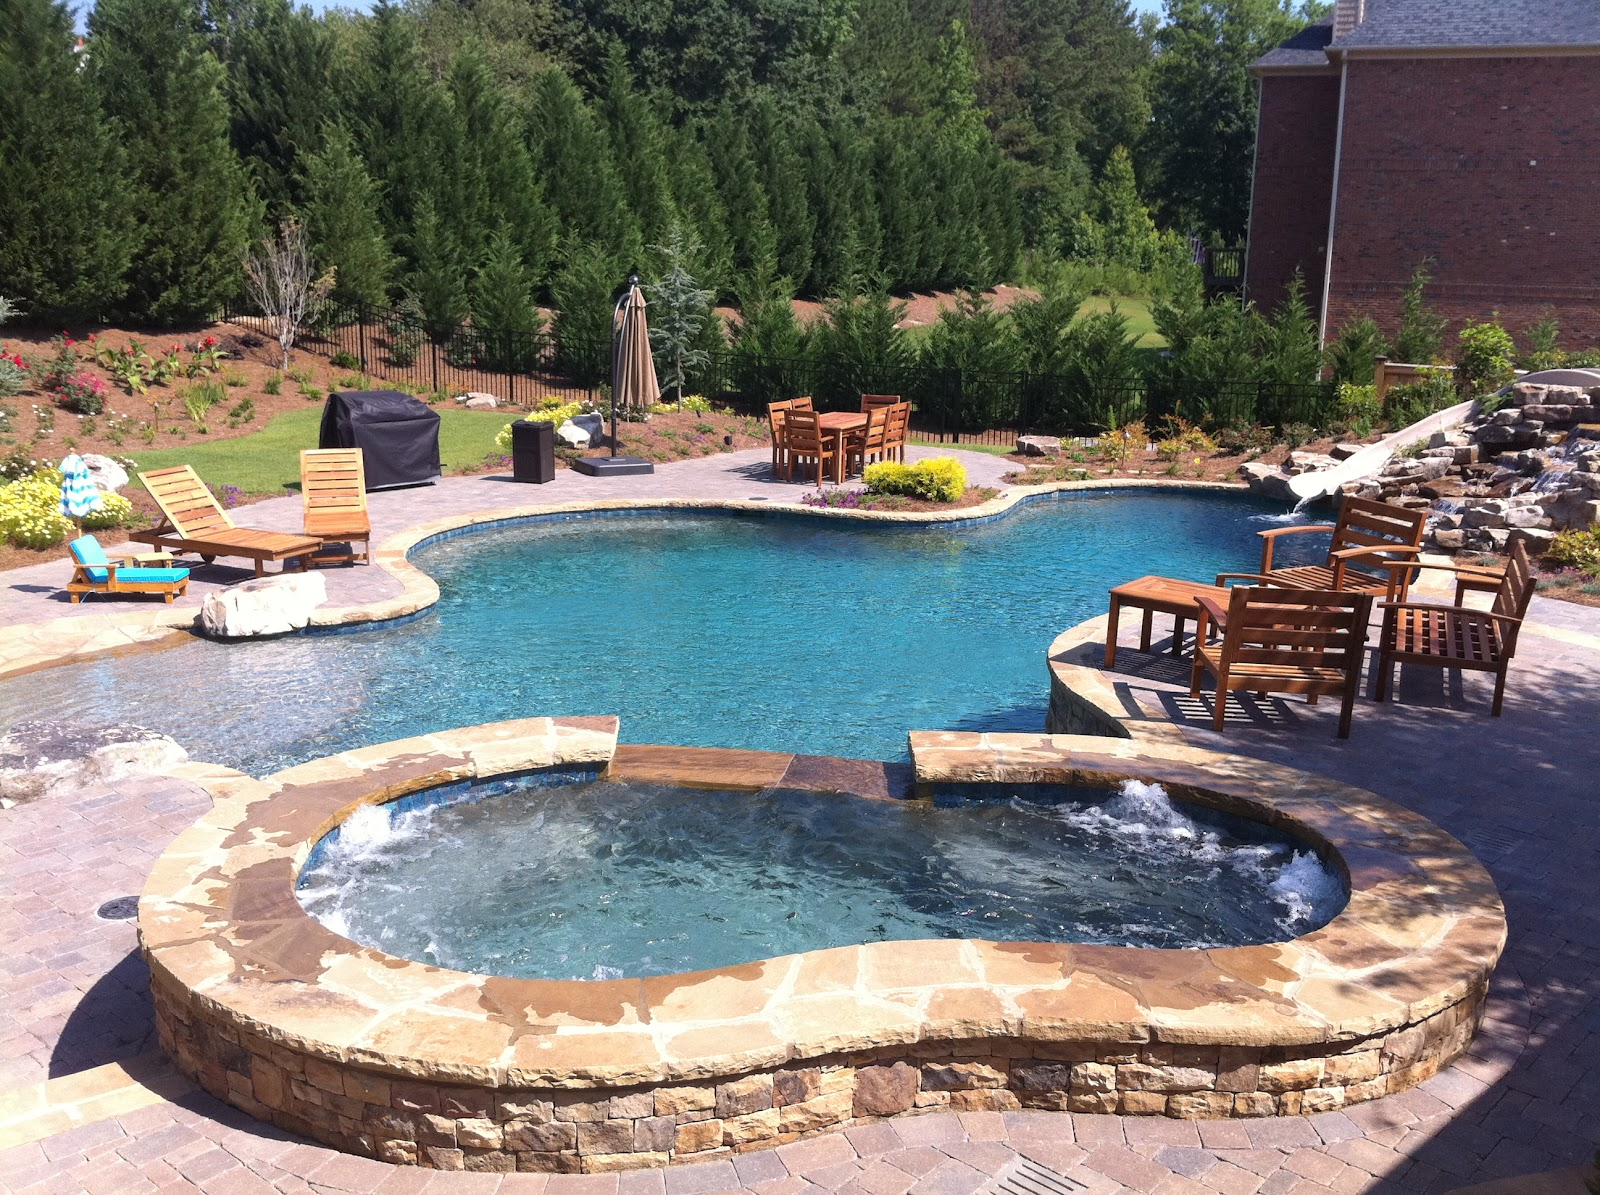 Backyard Oasis Pools: Free Form Pool, Beach Entry, Rock ...